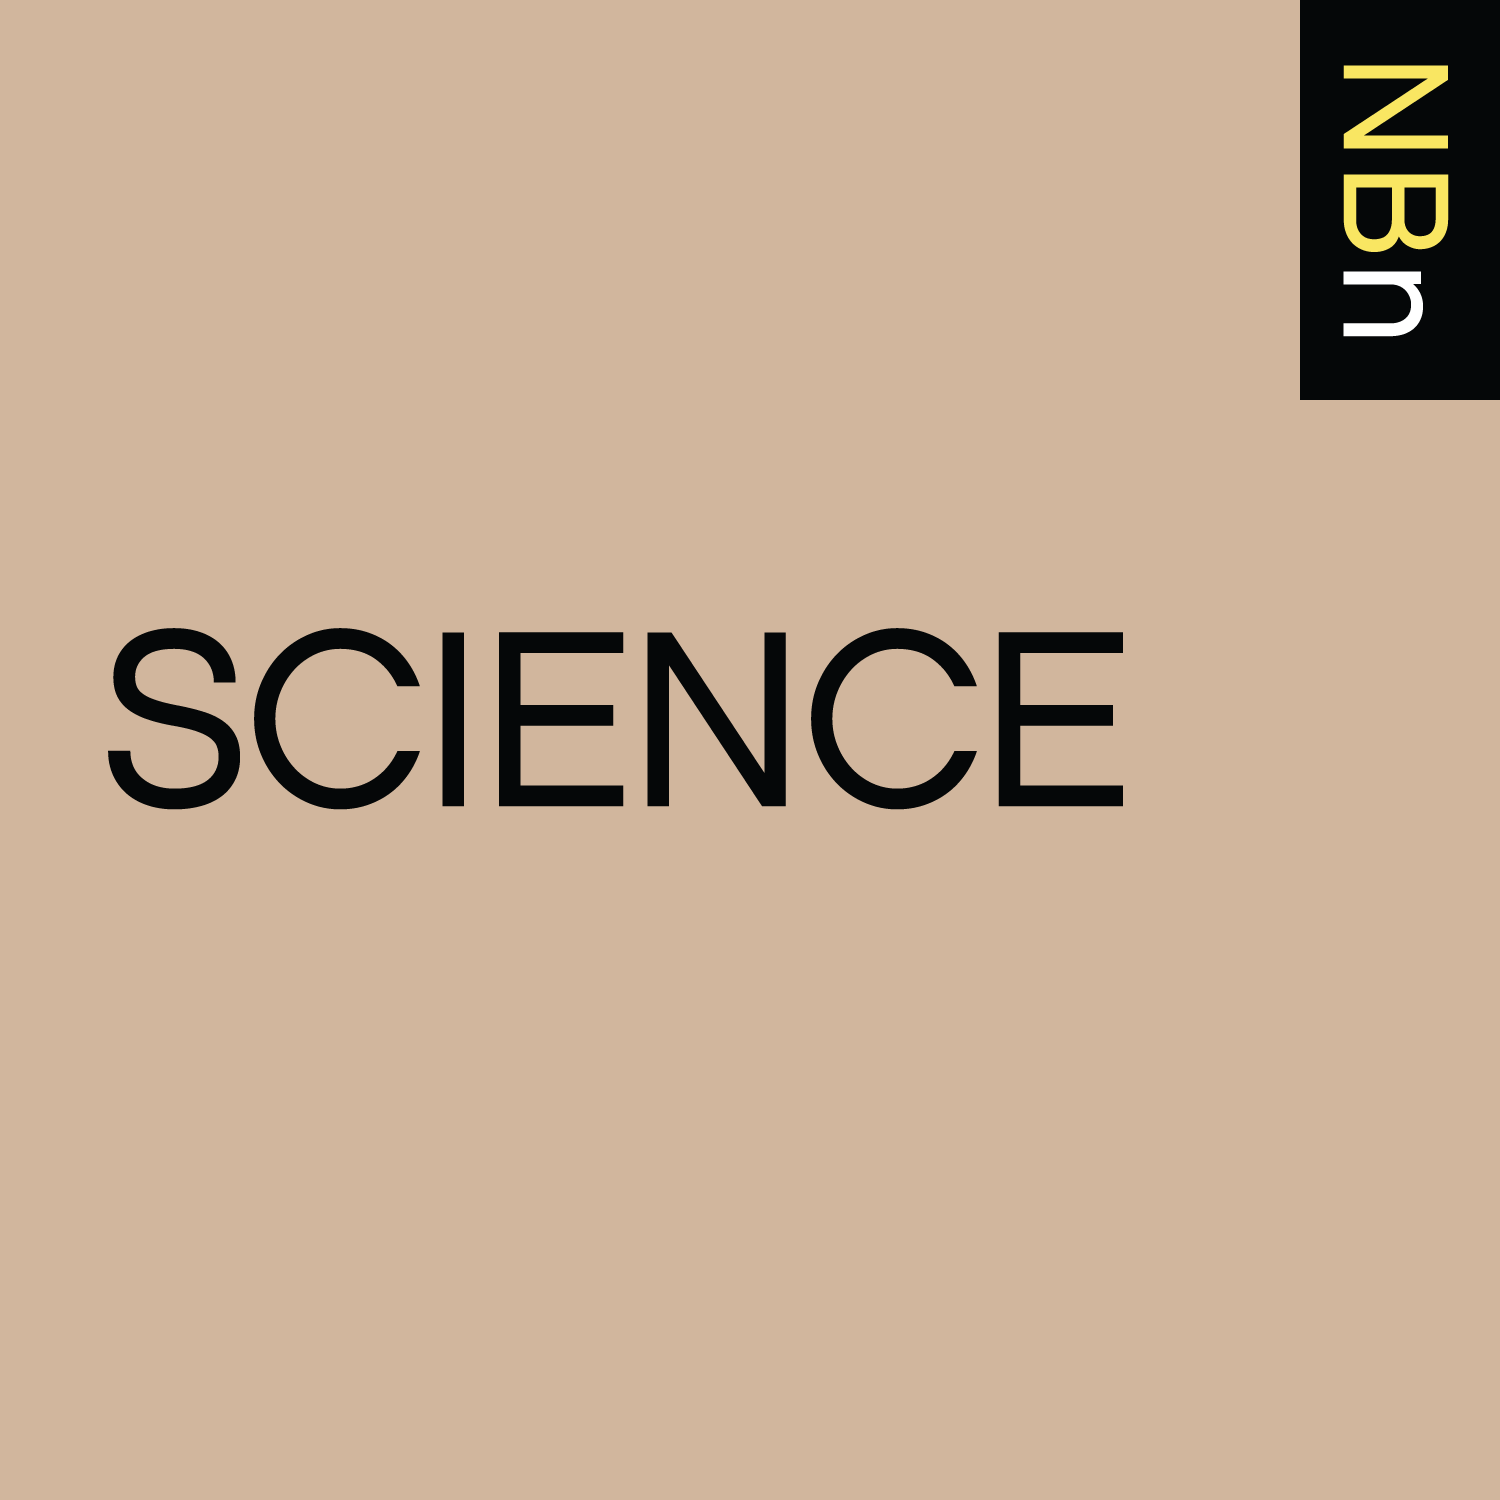 New Books in Science podcast tile